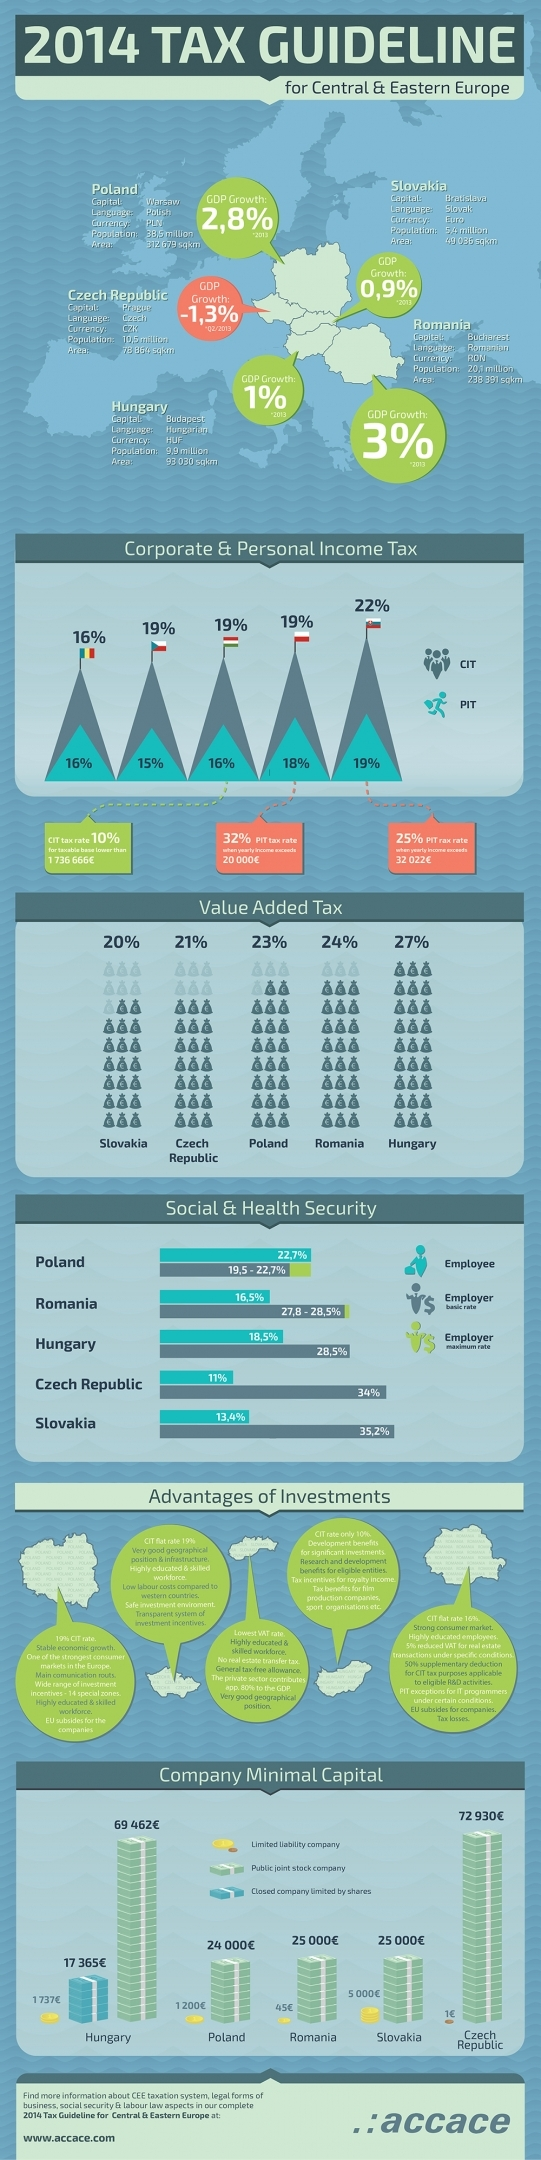 Essential top 5 information an investor should know about Central and Eastern Europe (Infographic)